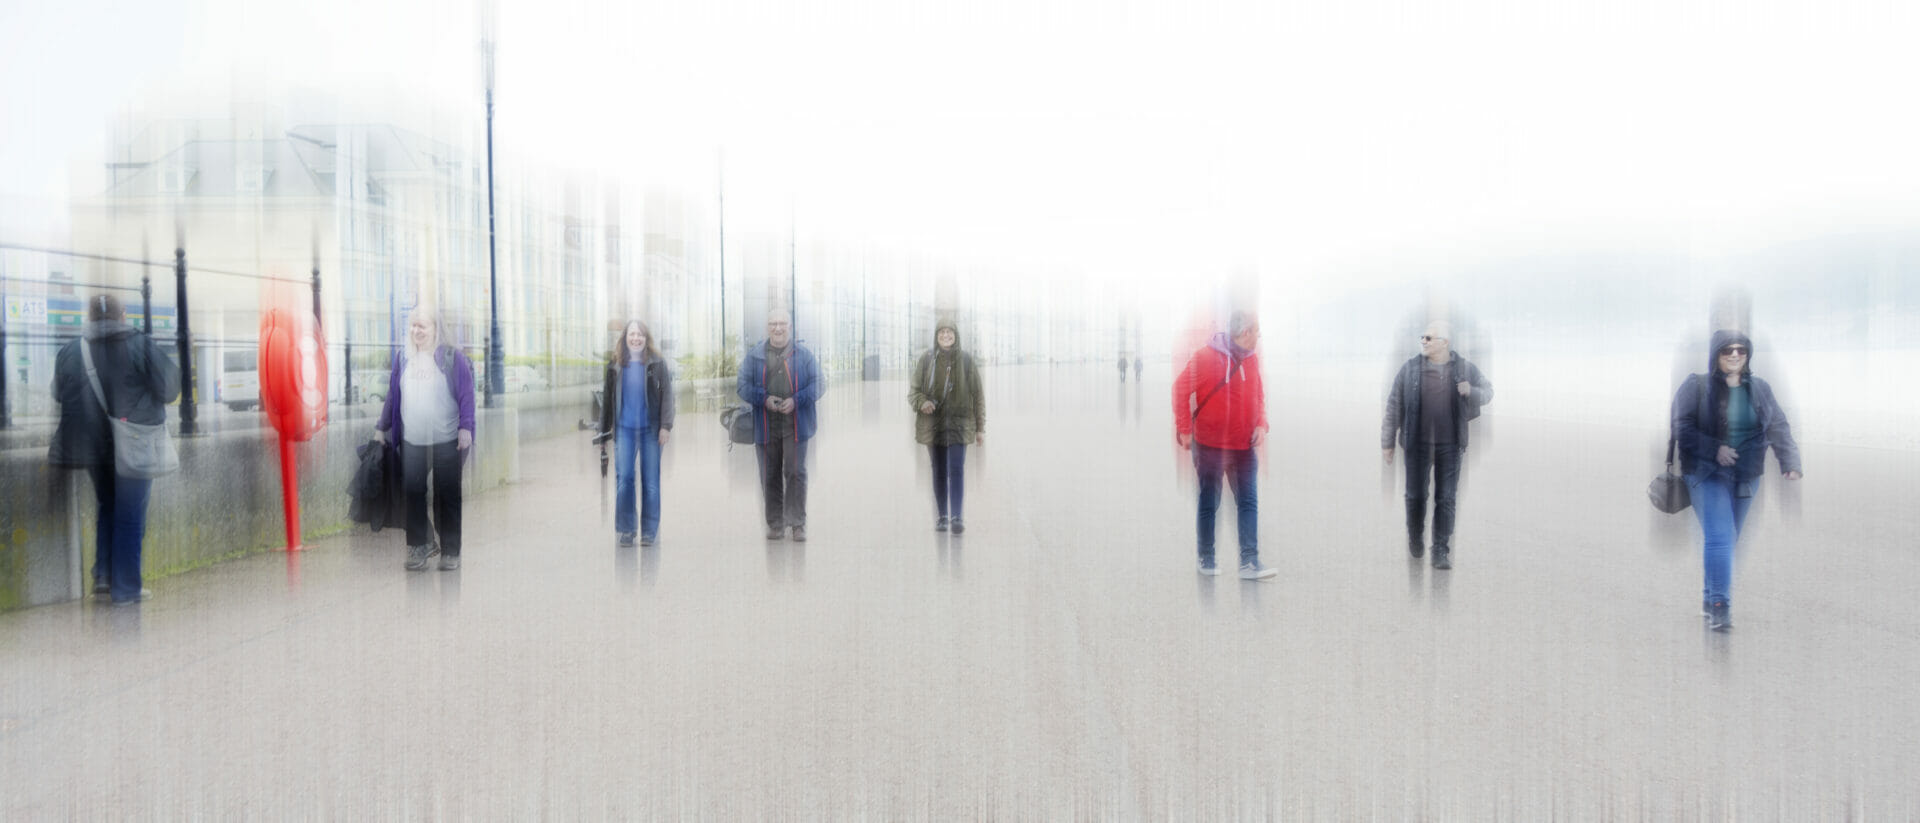 A blurred image (intentional camera movement) of a group of people socially distancing walking along the Llandudno Prom in North Wales. Taken on a Welshot Photographic Workshops and Events